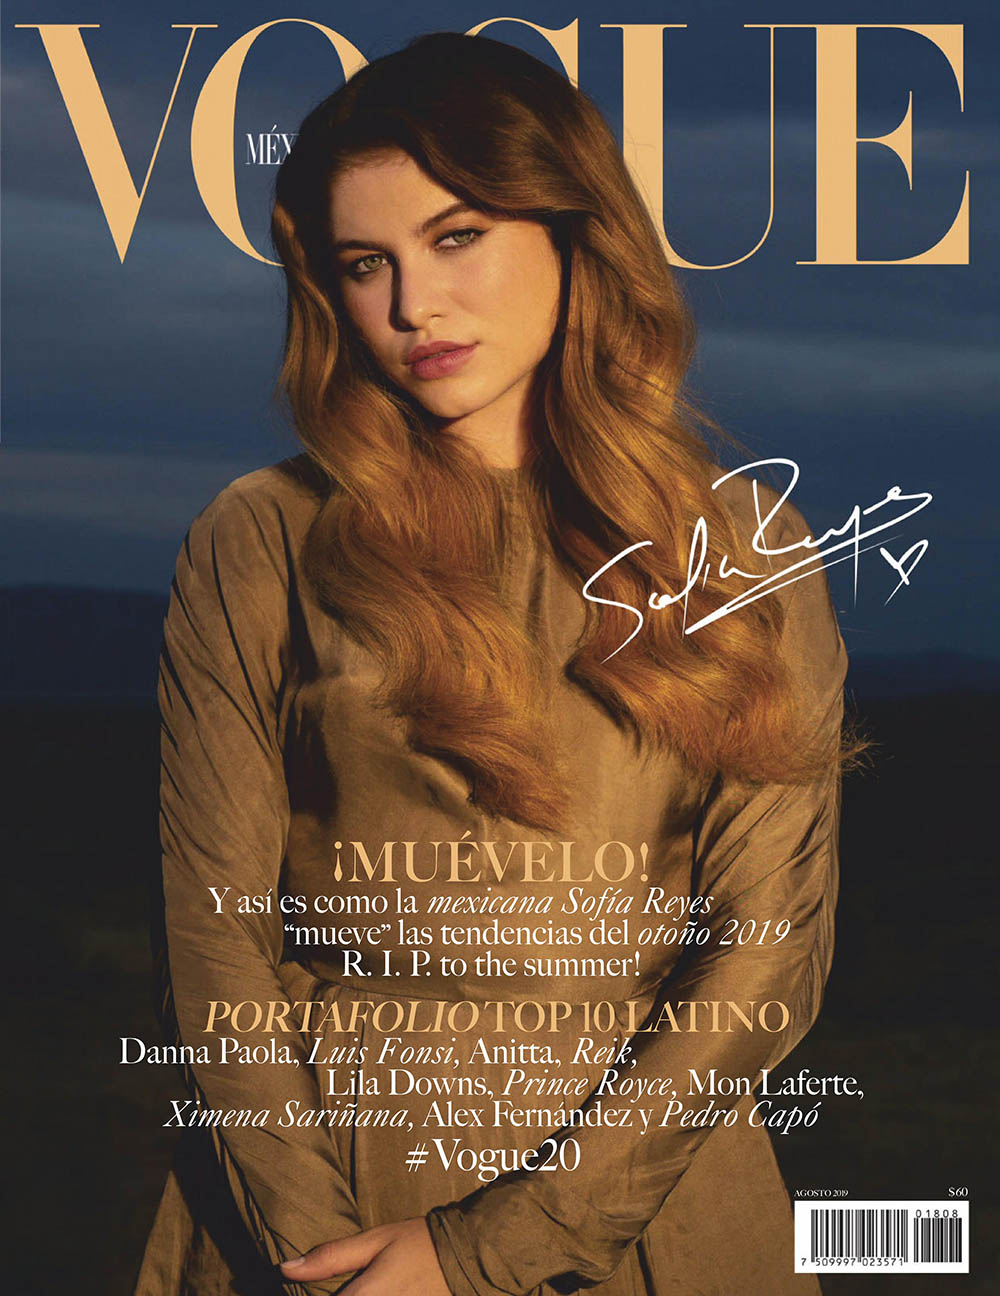 Sofía Reyes covers Vogue Mexico August 2019 by Tania Franco Klein